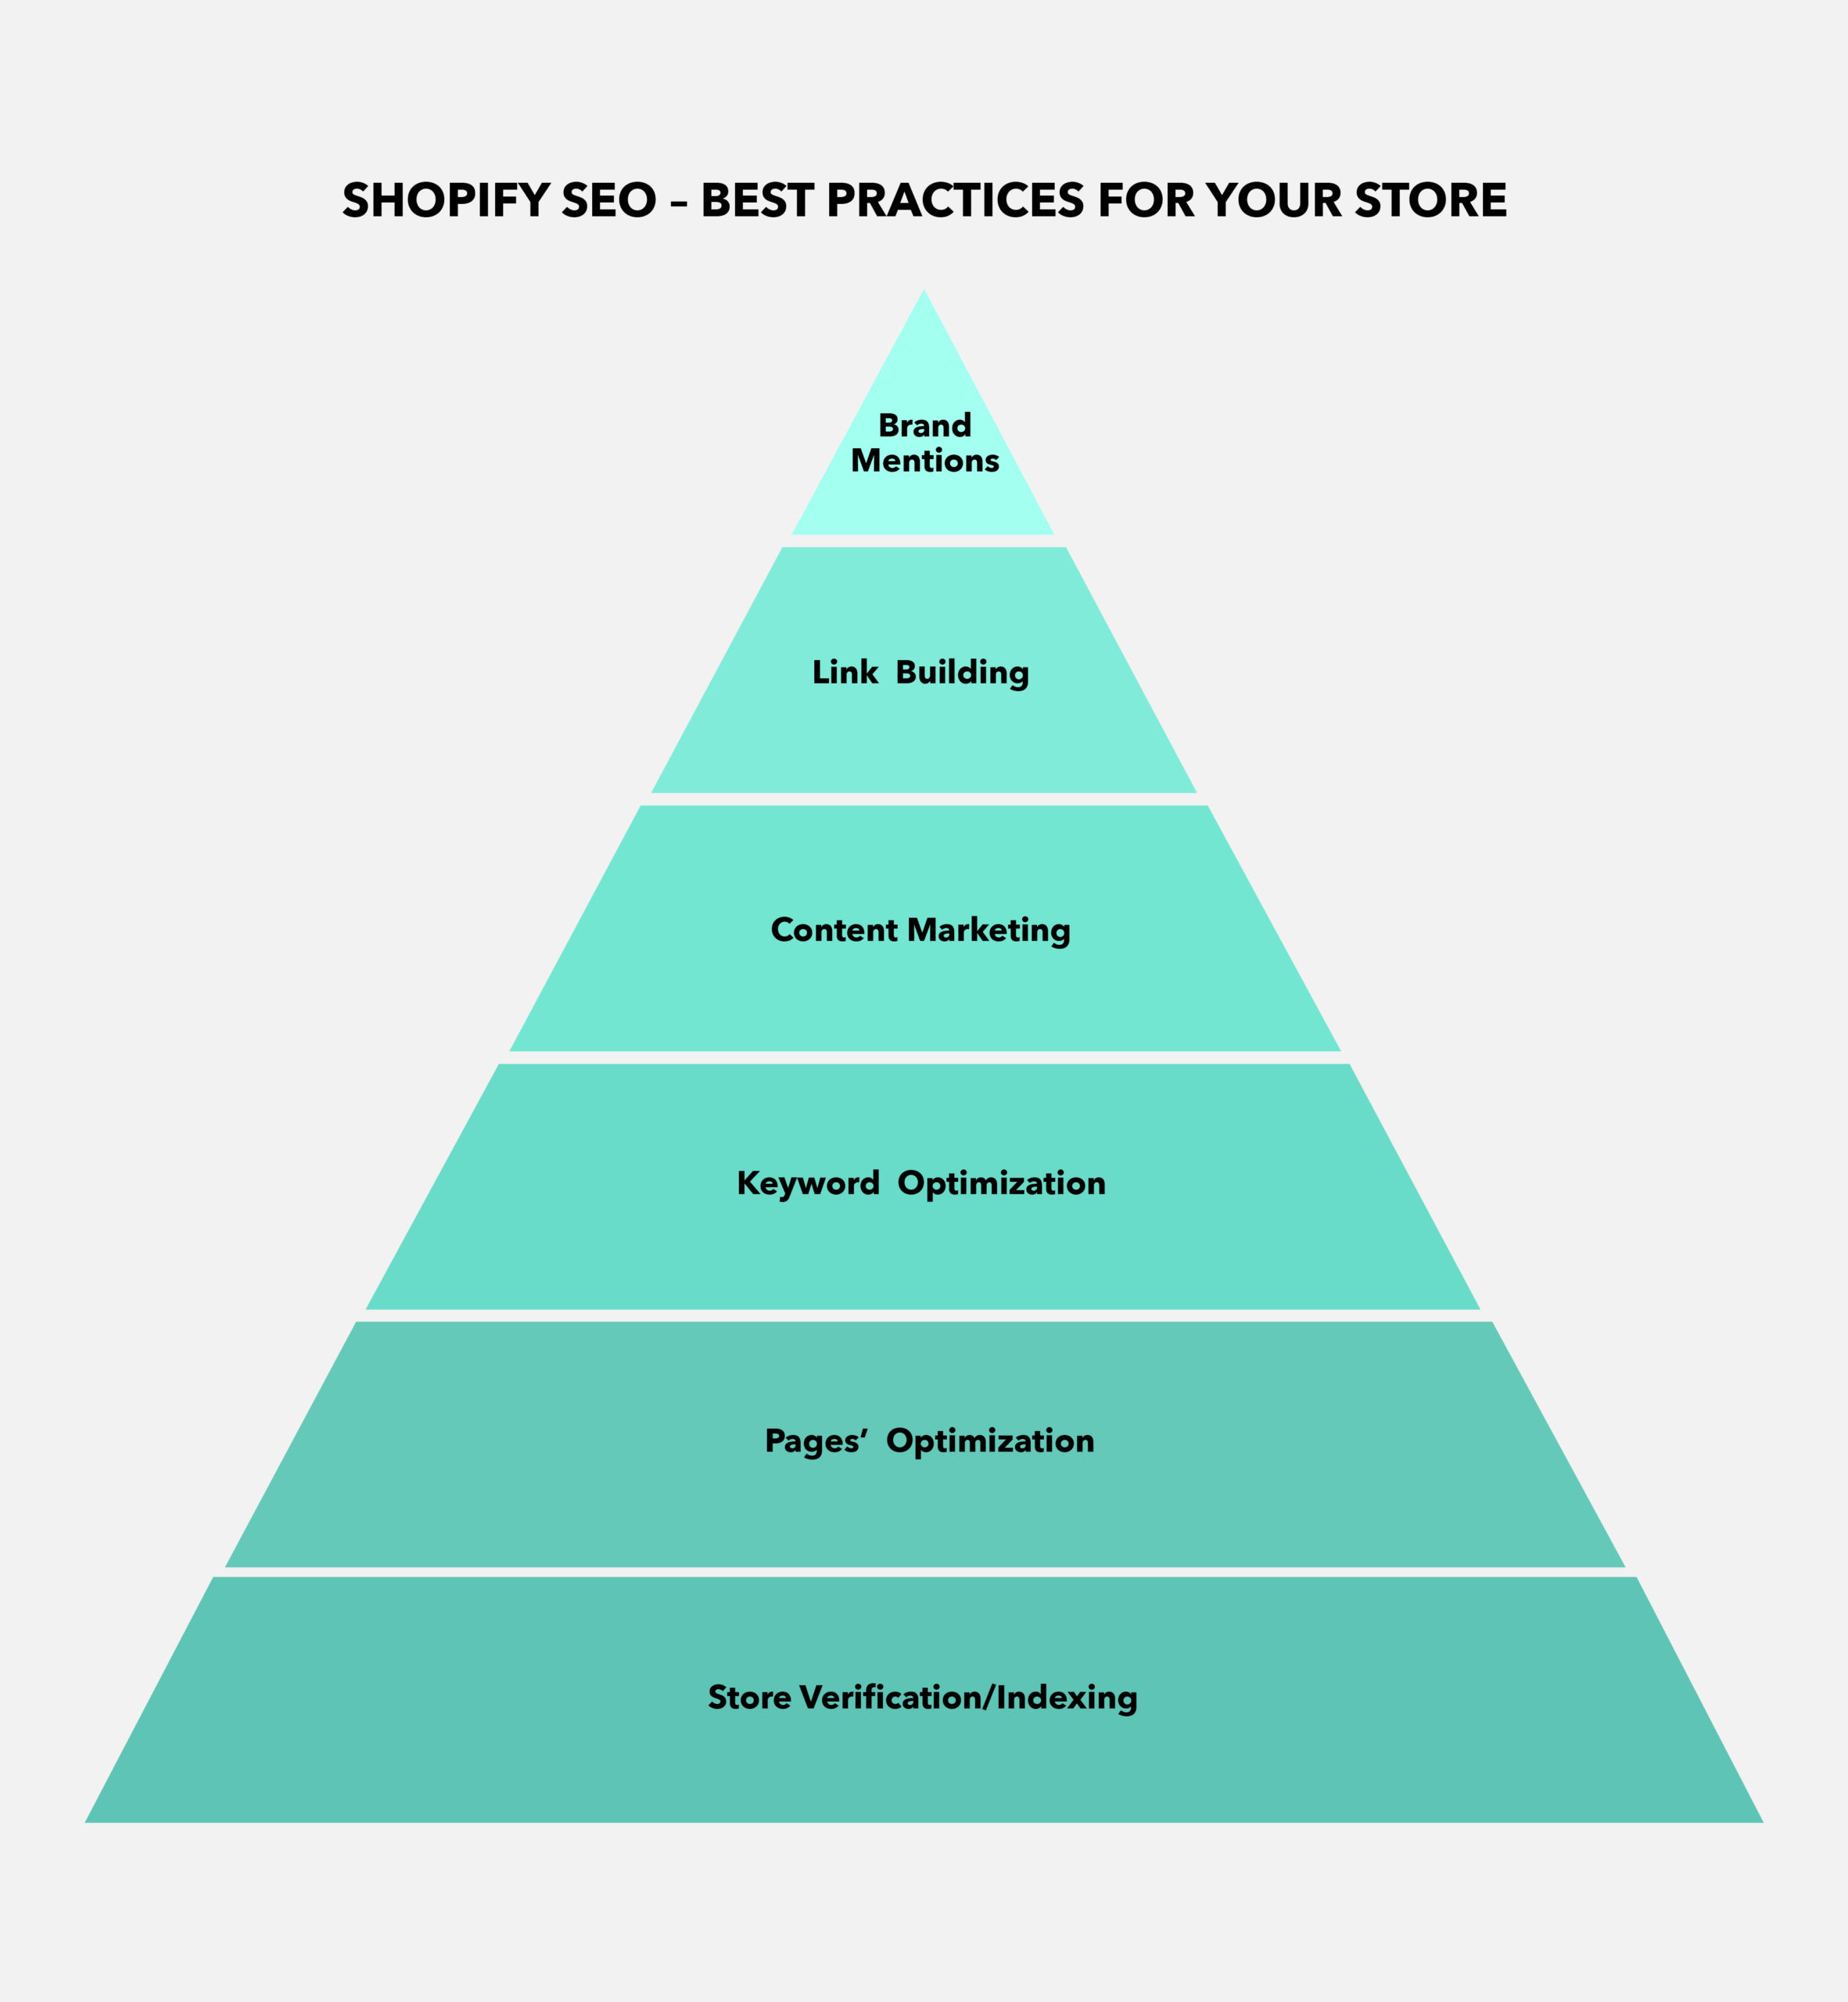 SEO Shopify: Best practices for your store